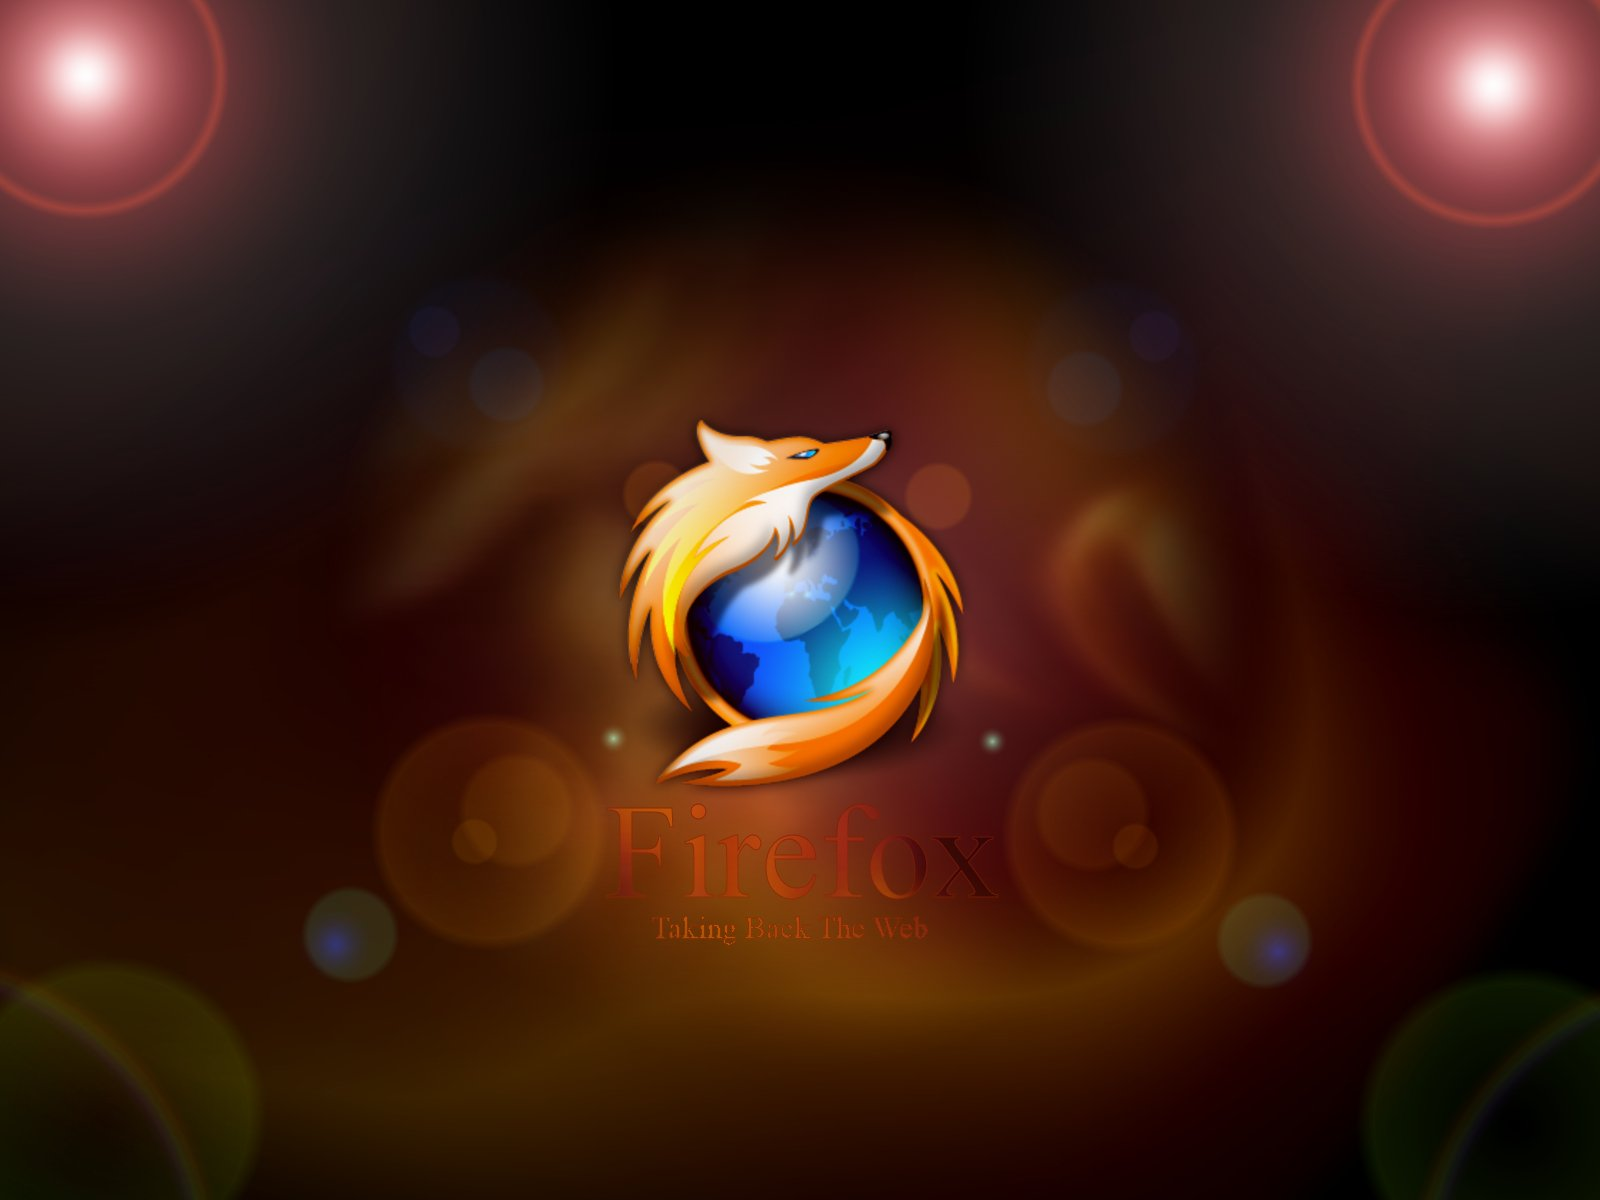 firefox wallpaper hd - sf wallpaper